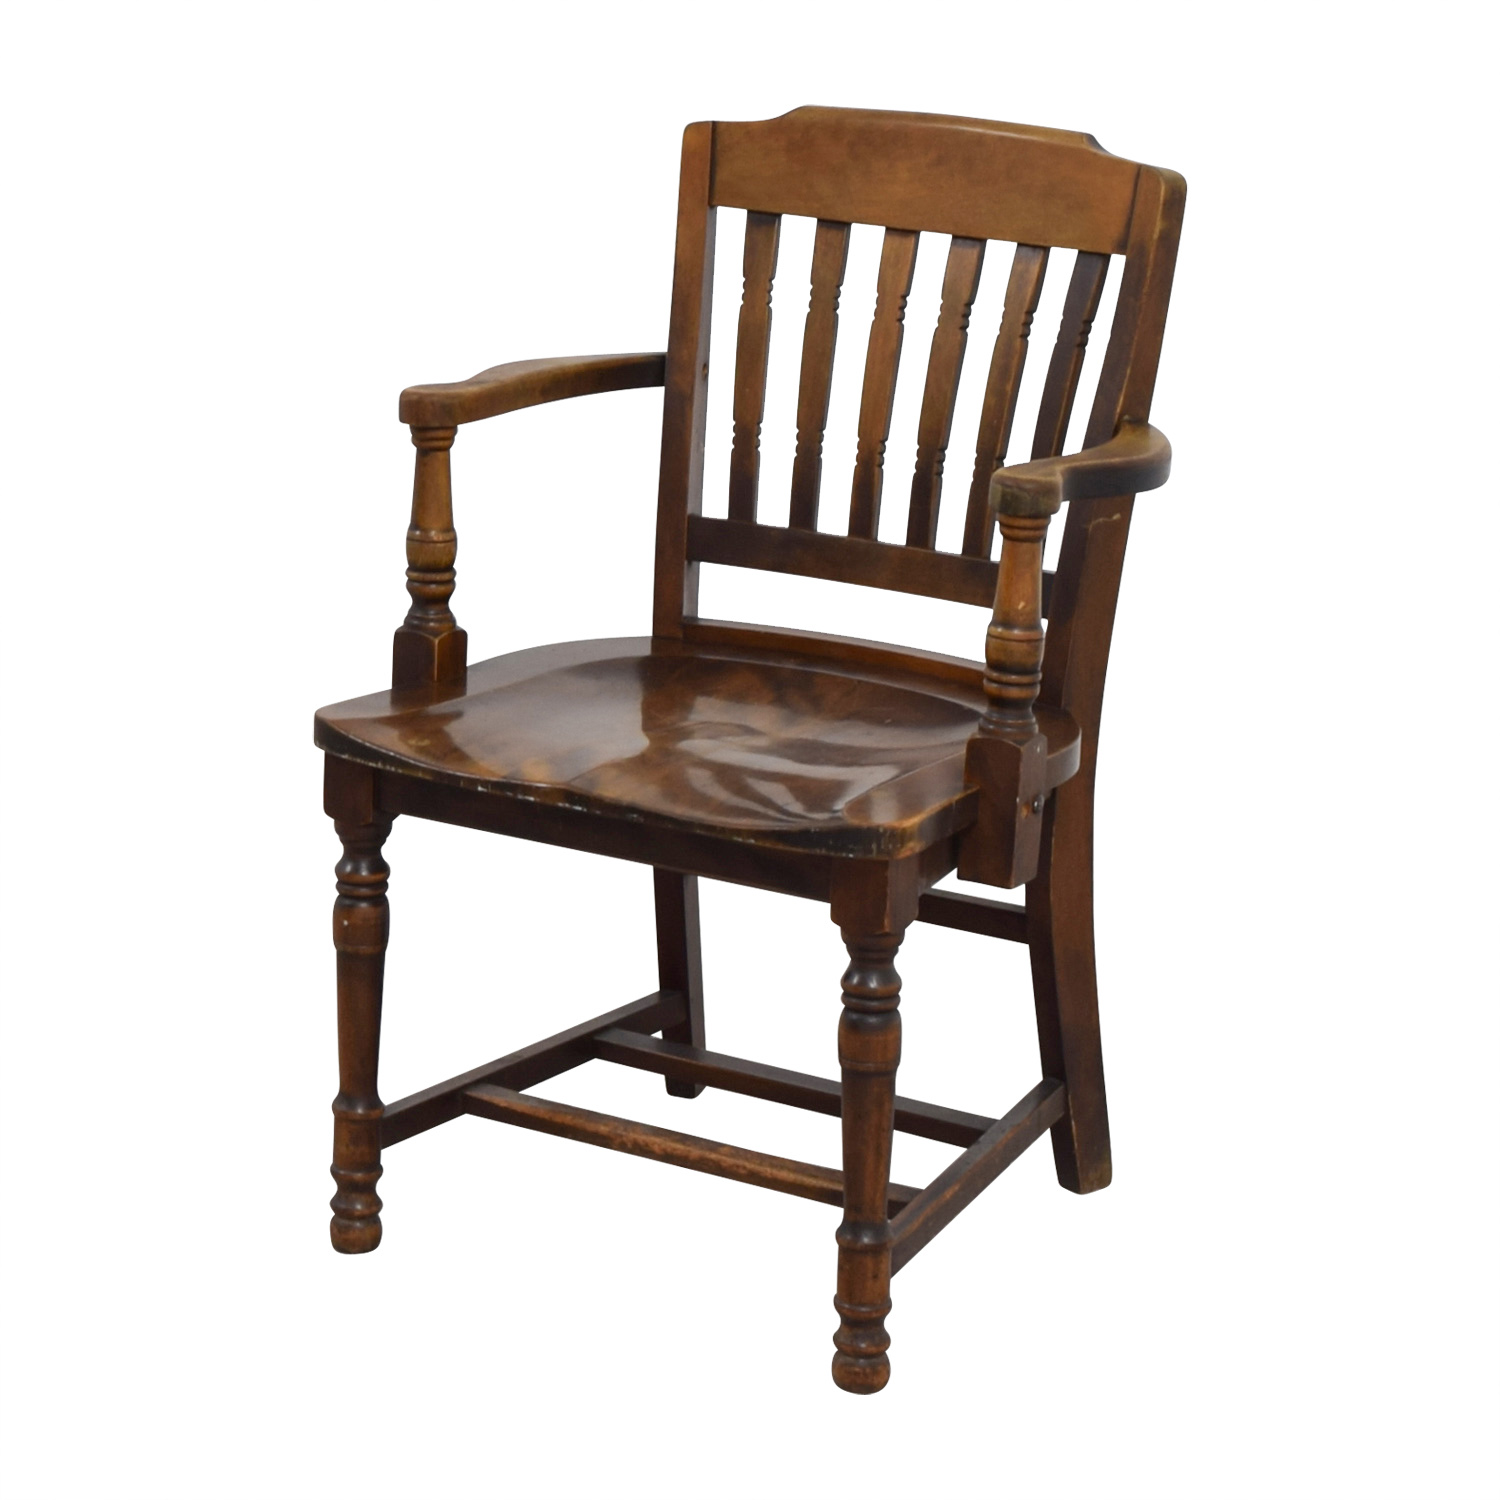 wood hand chair childrens lawn chairs 2 88 off antique spindel